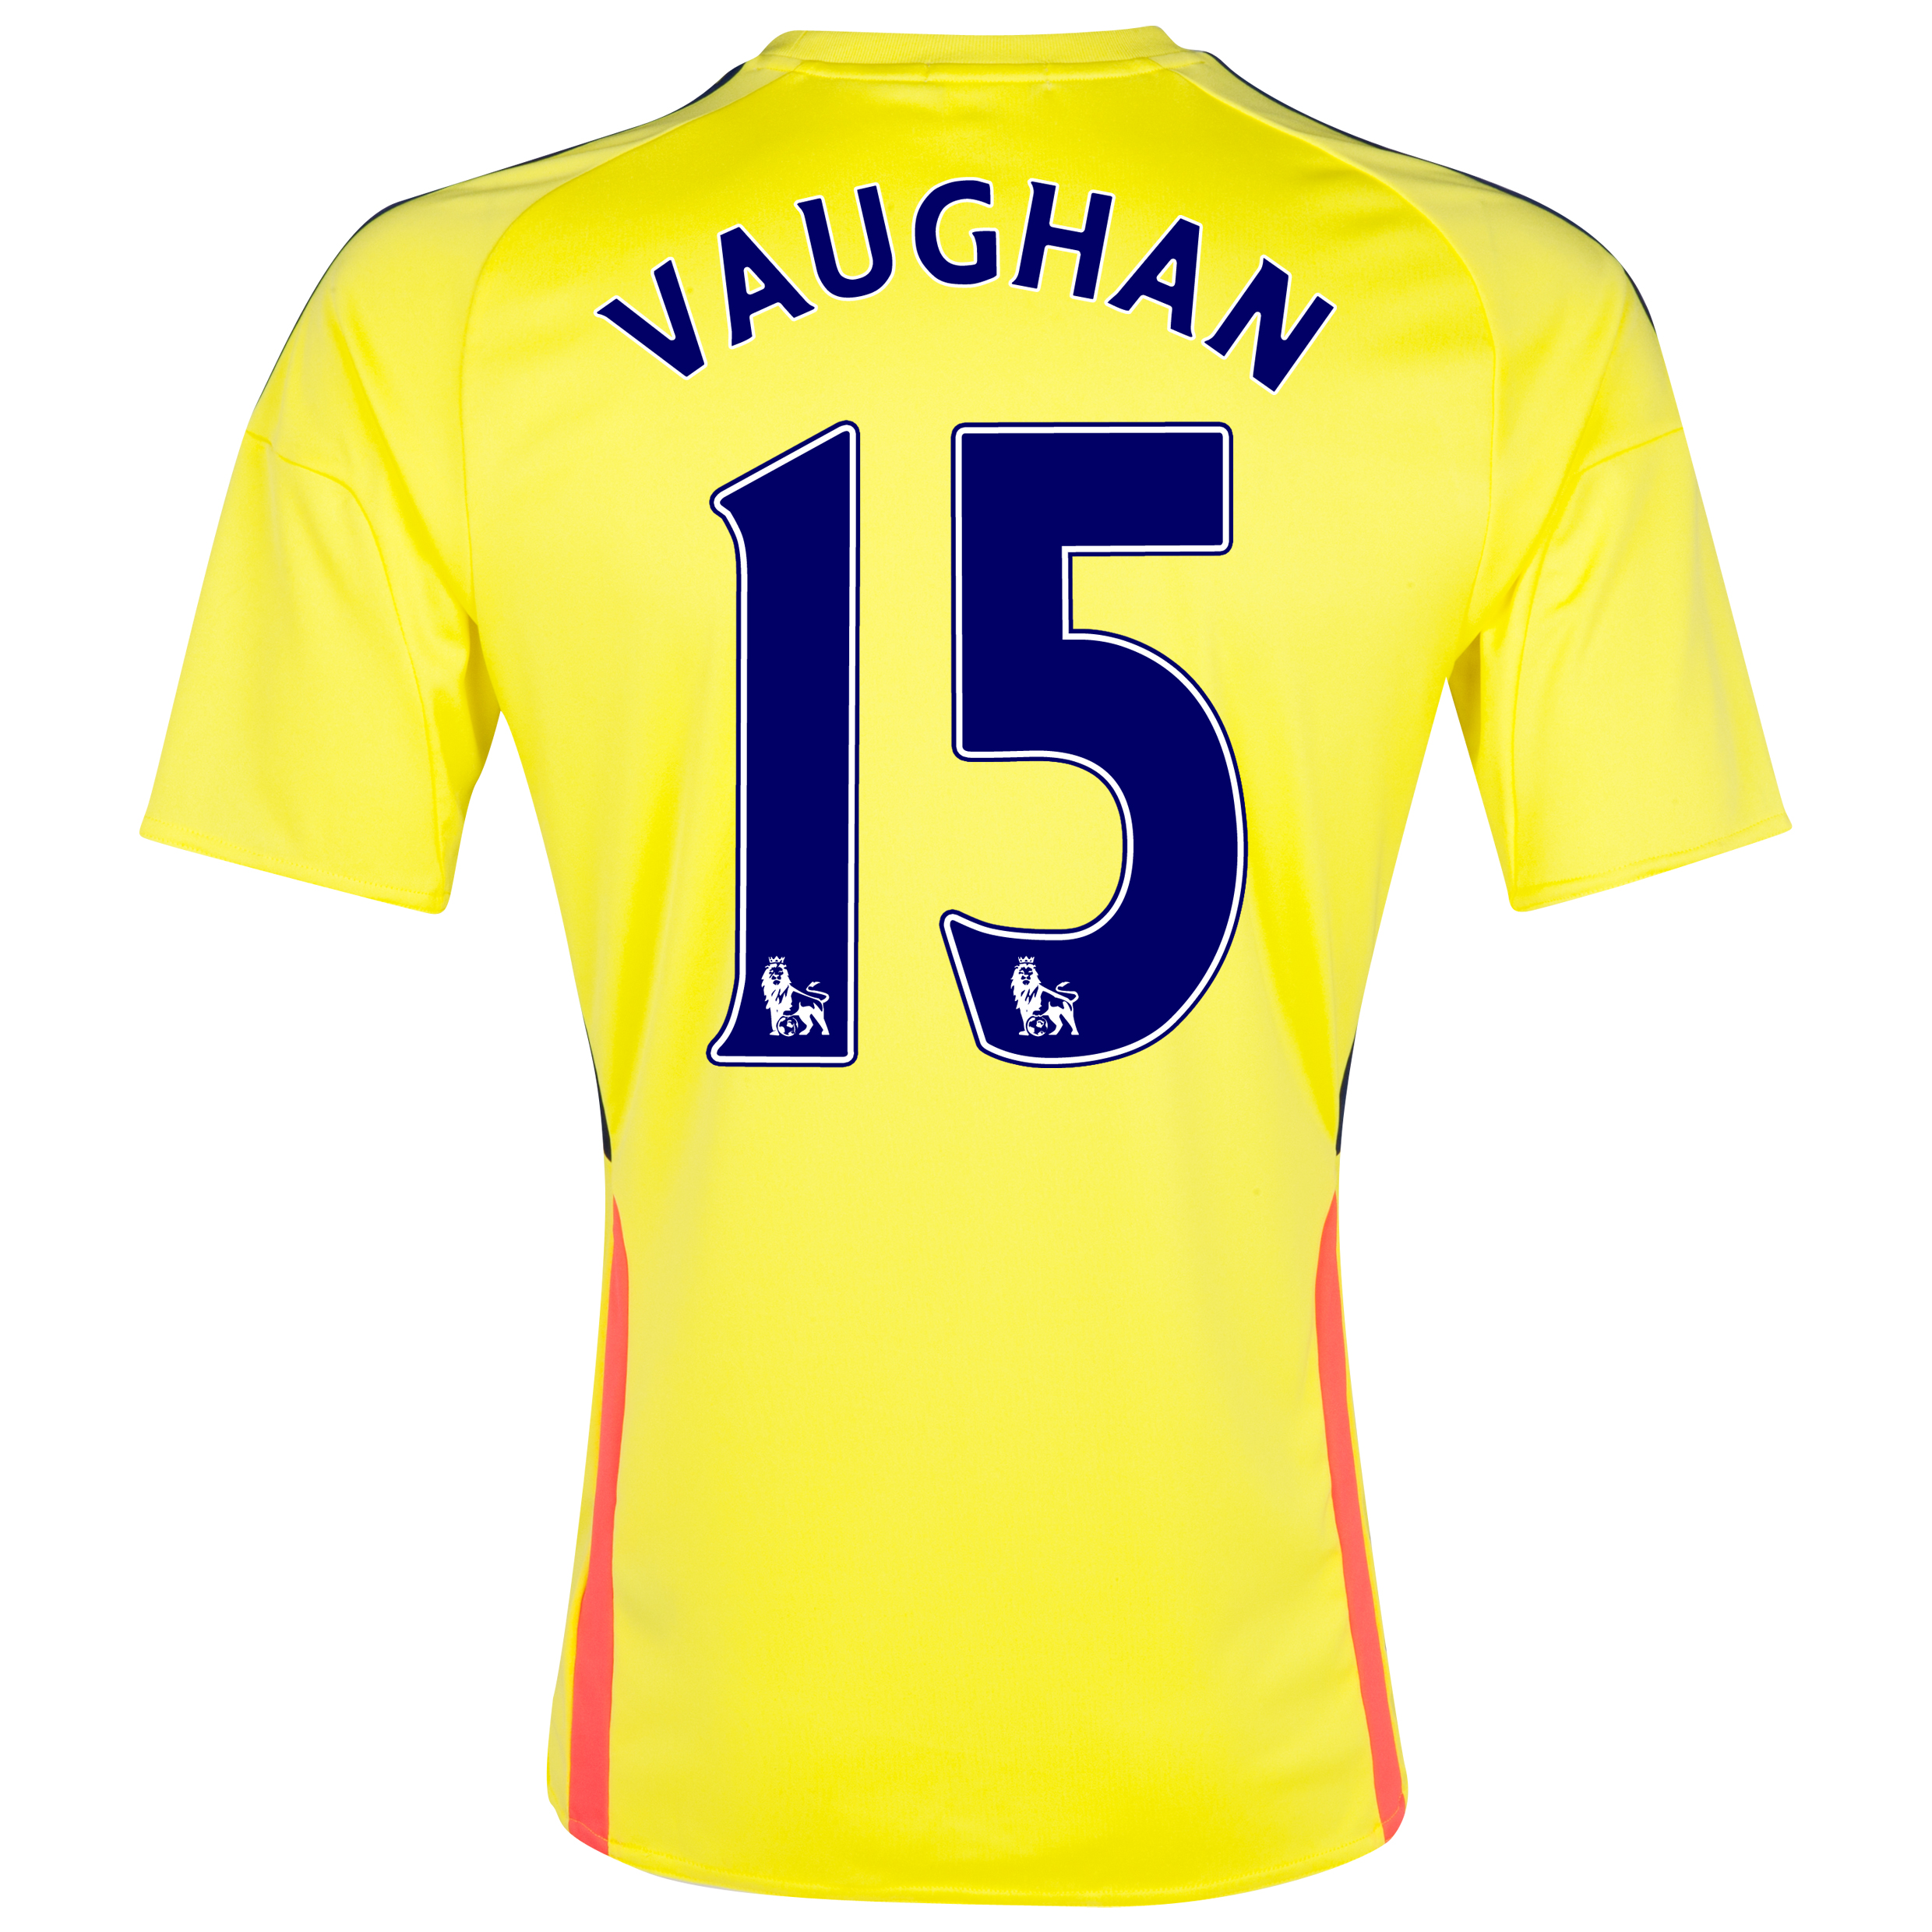 Sunderland Away Shirt 2013/14 - Junior with Vaughan 15 printing